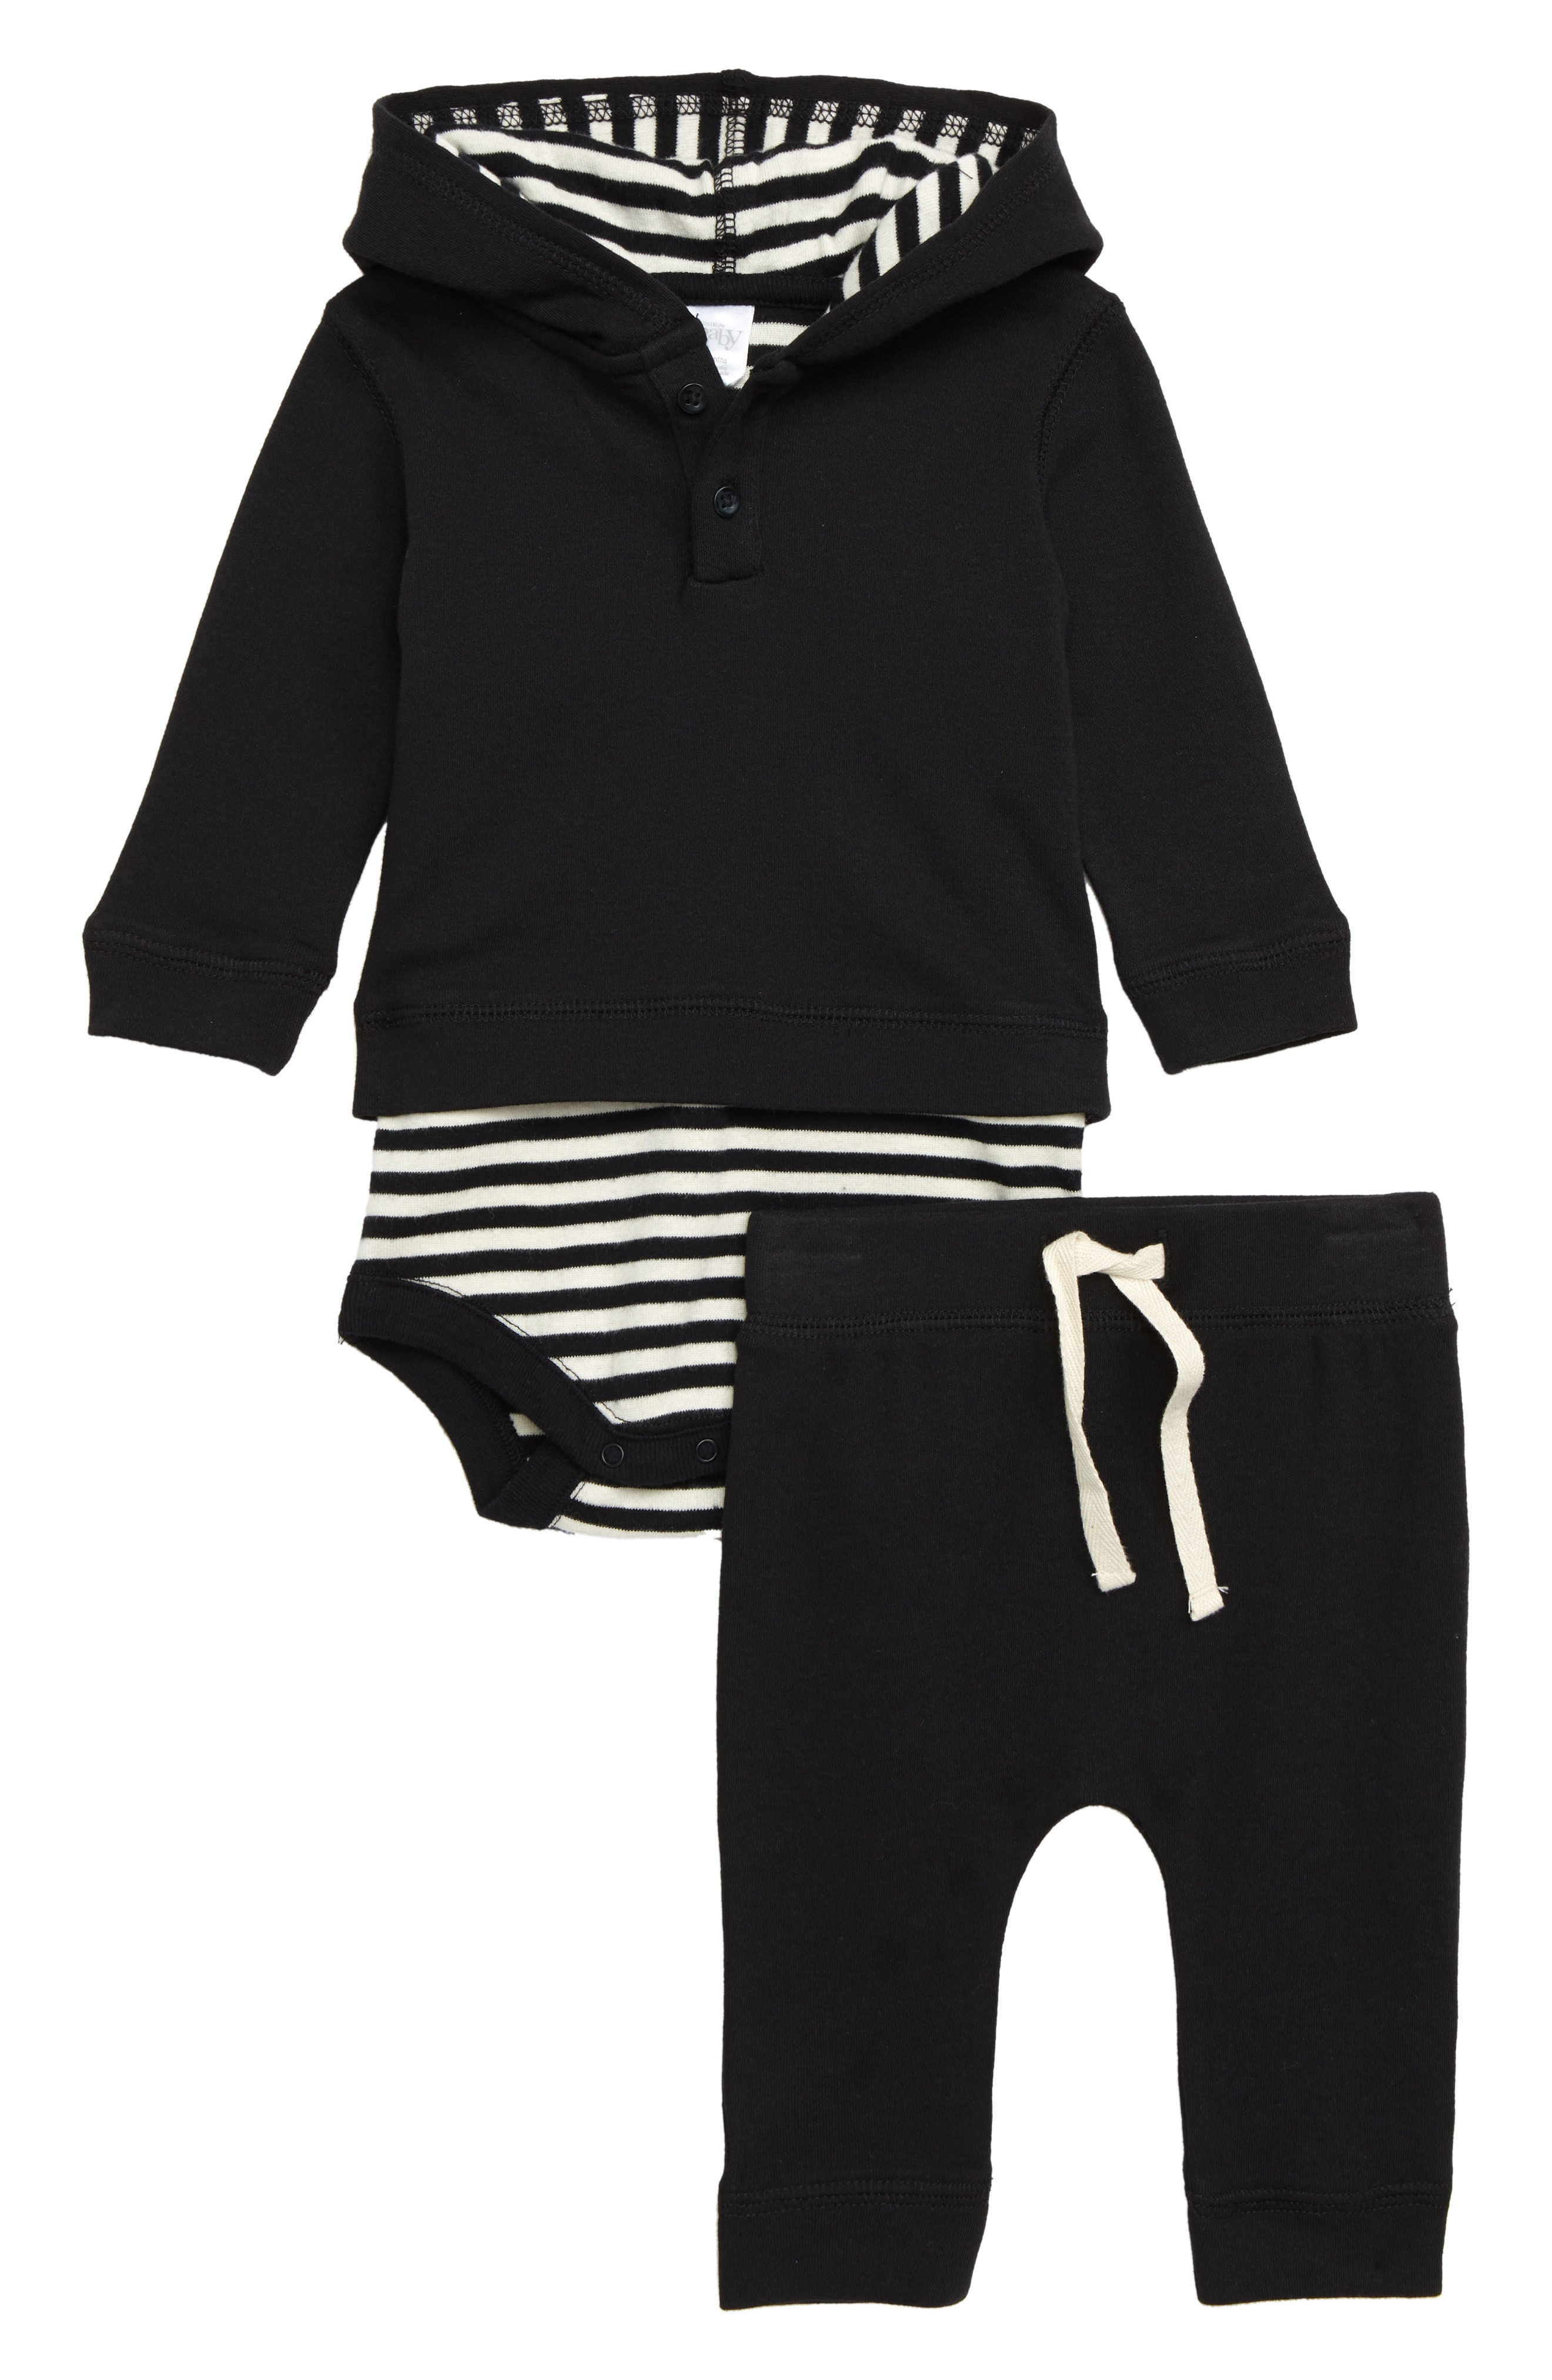 Baby Boy Rompers & One-Pieces: Woven, Thermal & Cotton | Nordstrom